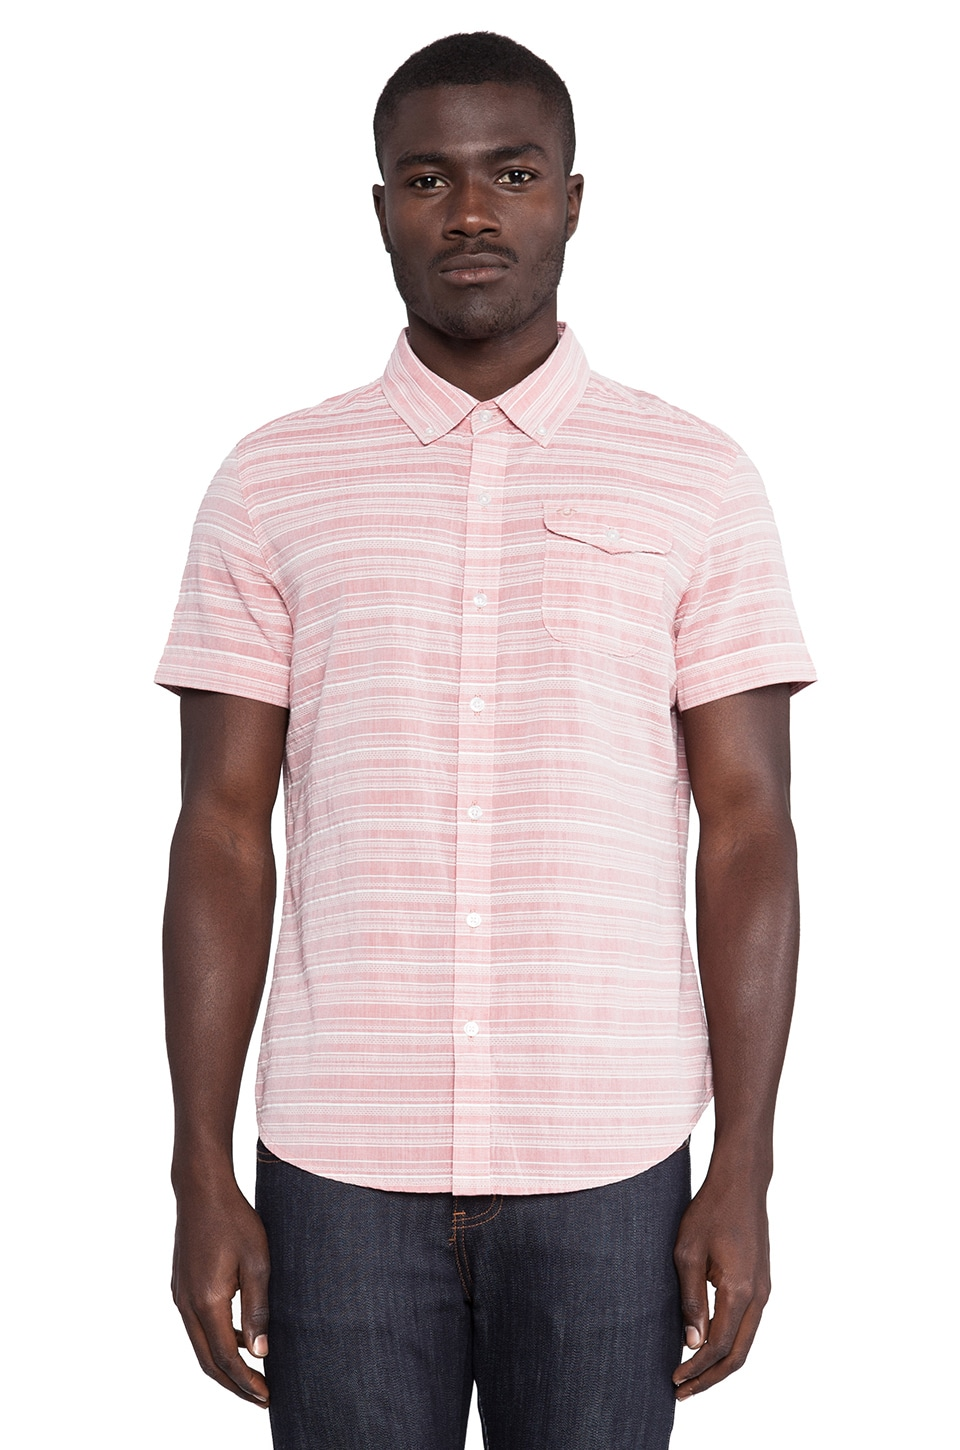 True Religion Single Pocket Shirt in Washed Red